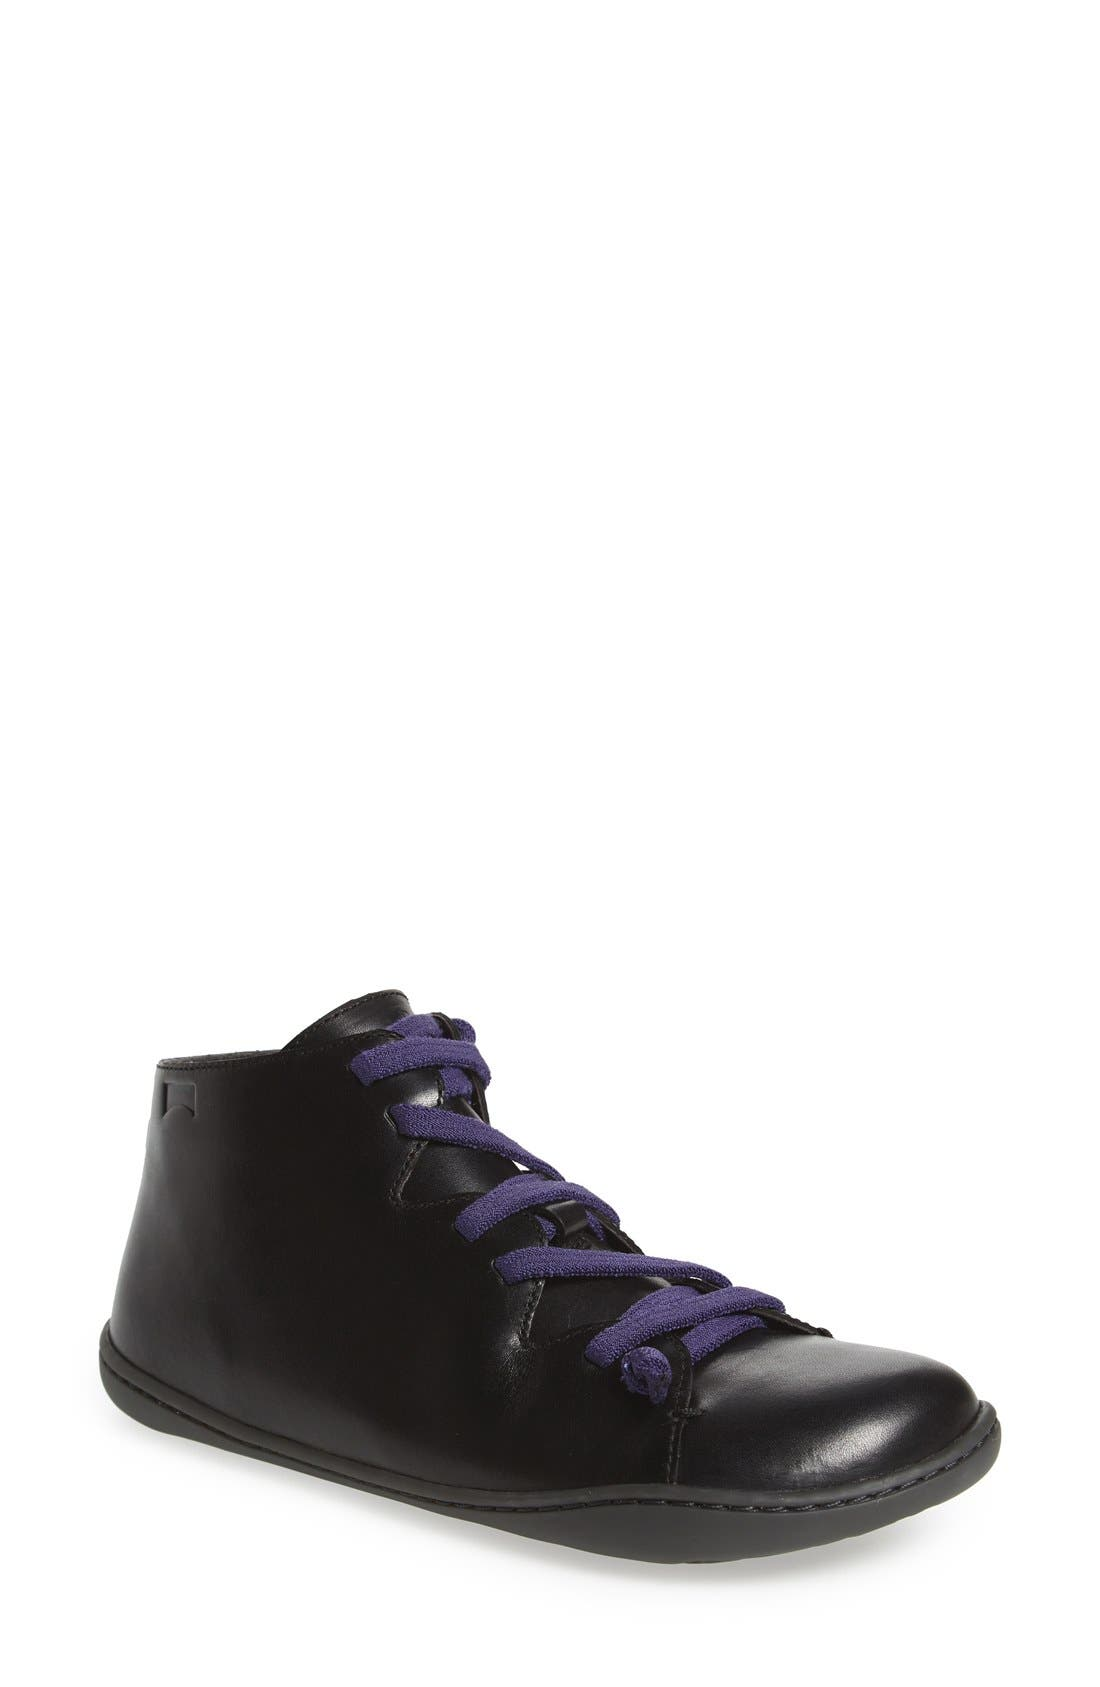 Alternate Image 1 Selected - Camper 'Peu Cami' Mid Sneaker (Women)